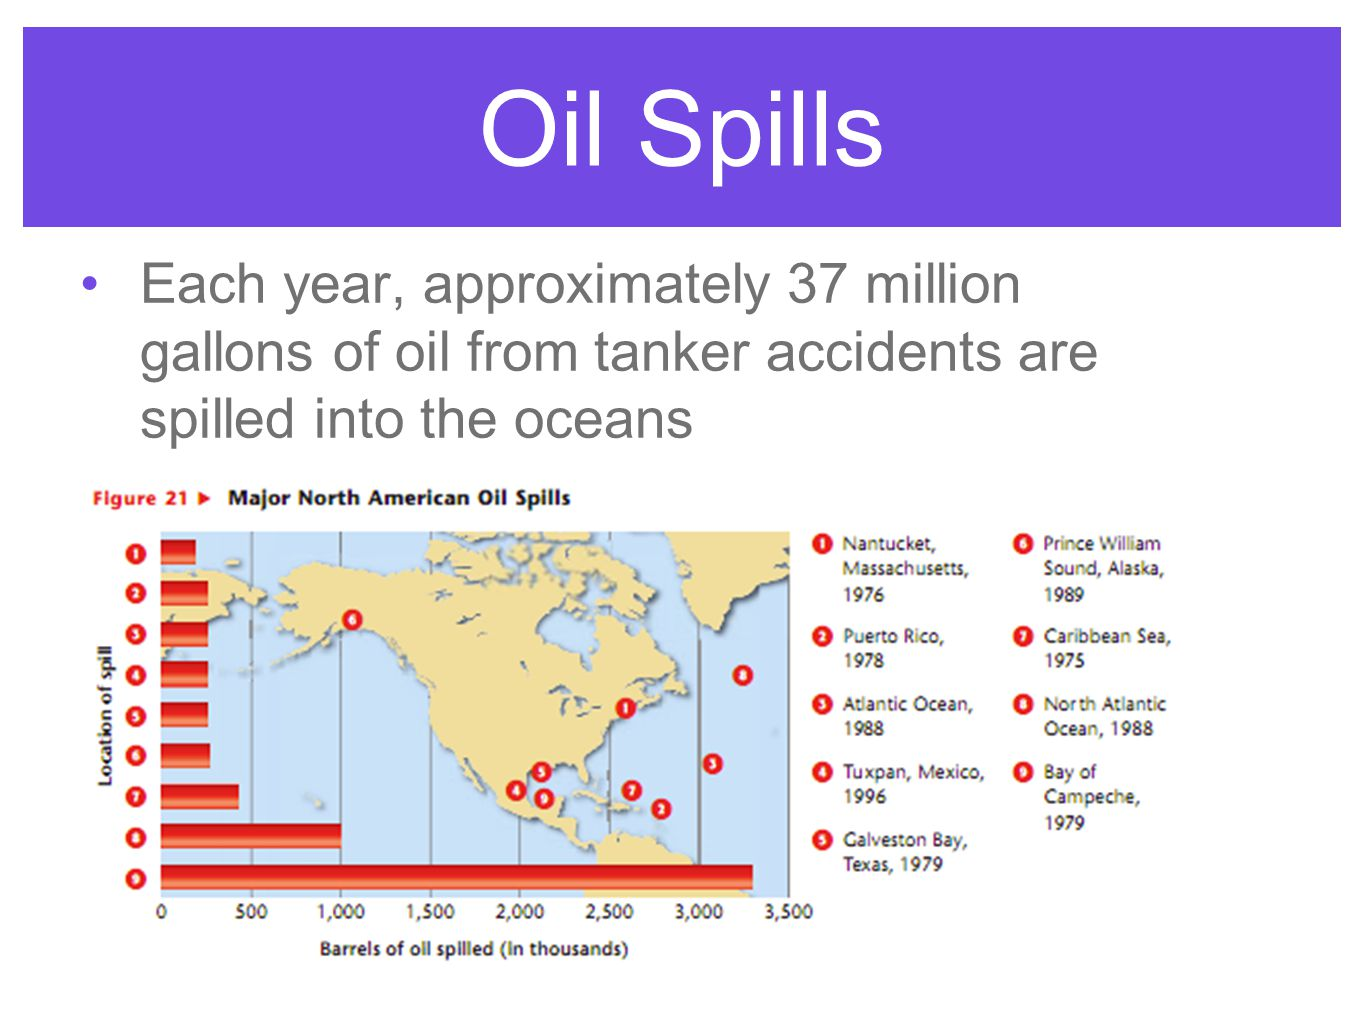 Each year, approximately 37 million gallons of oil from tanker accidents are spilled into the oceans